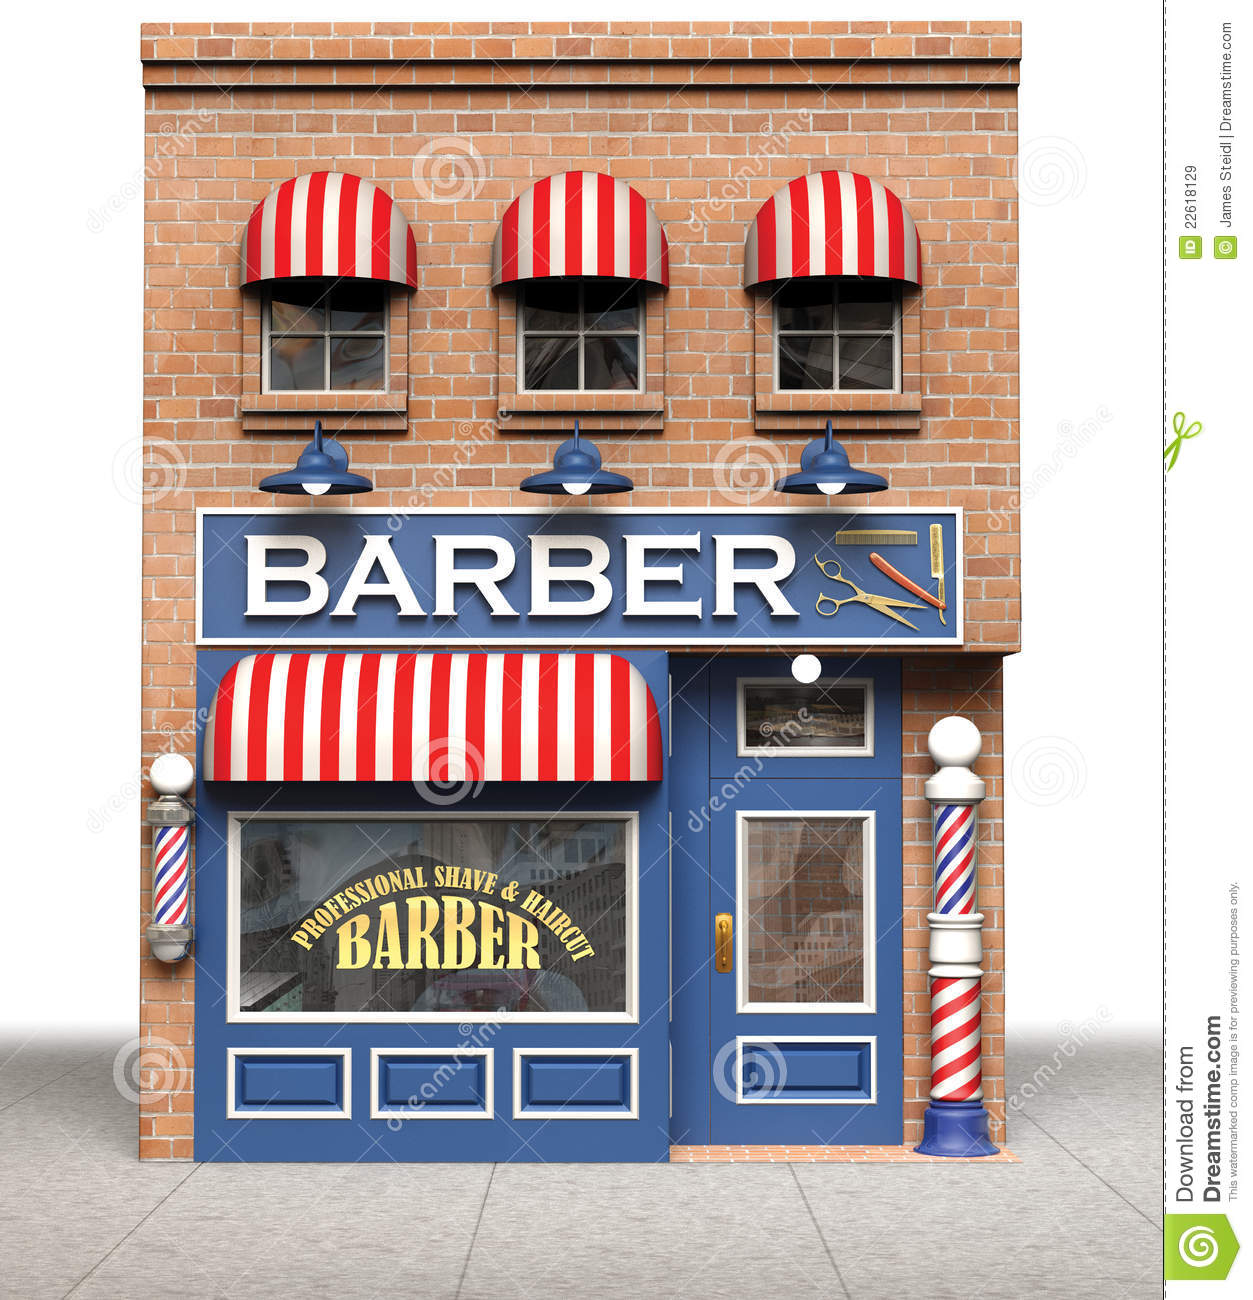 Barbershop isolated on a white background.